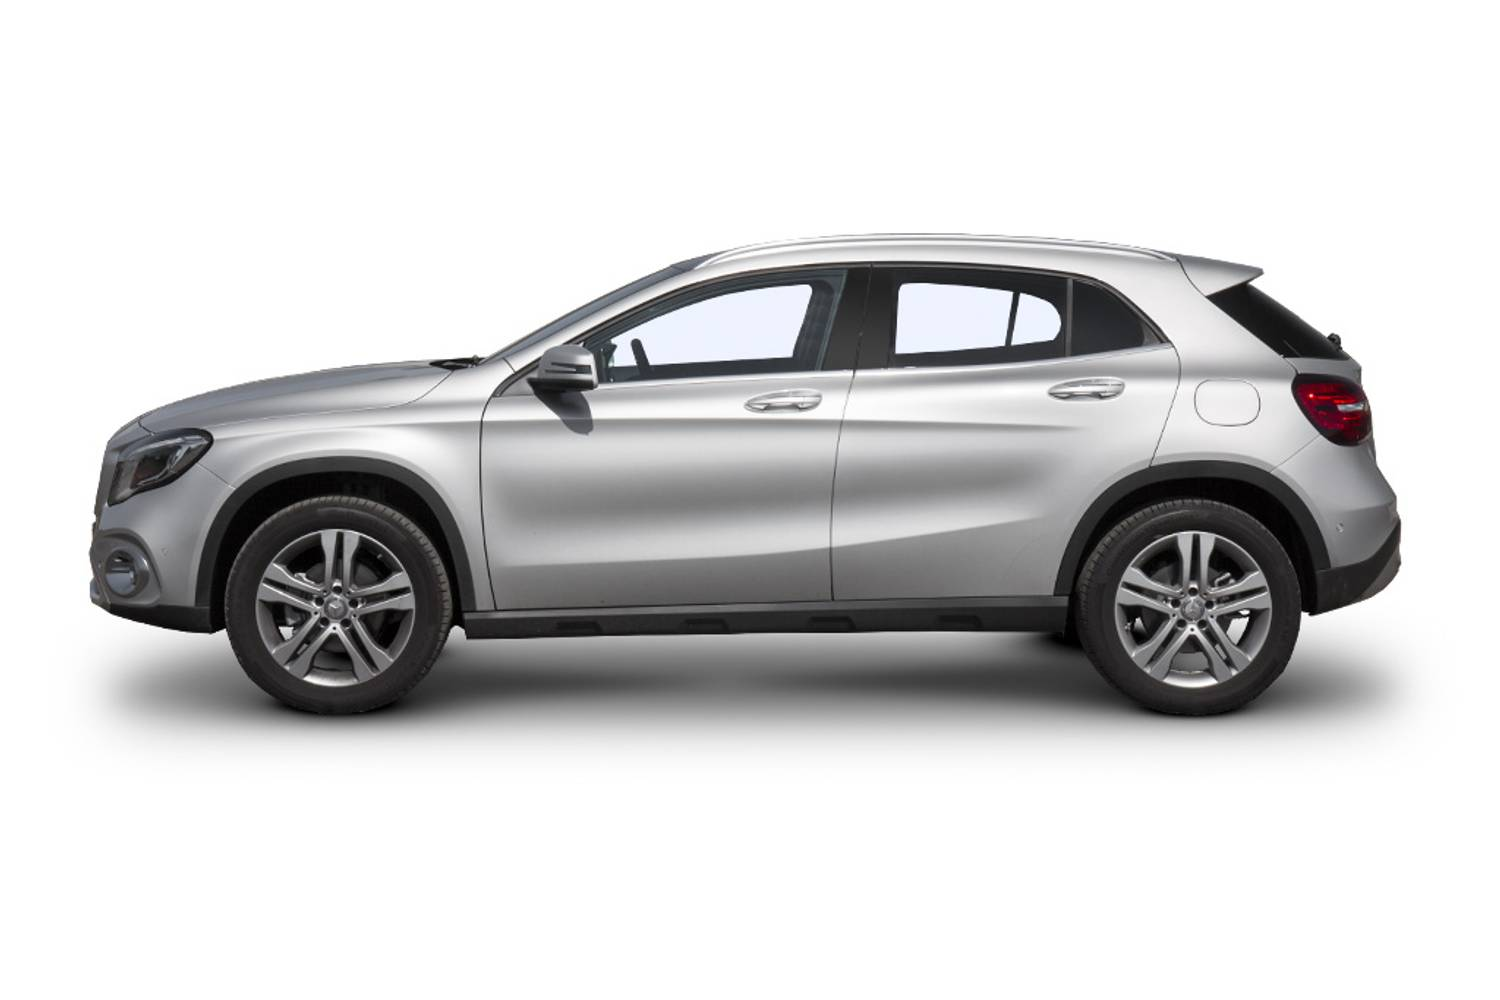 new mercedes-benz gla class hatchback gla 250 4matic amg line